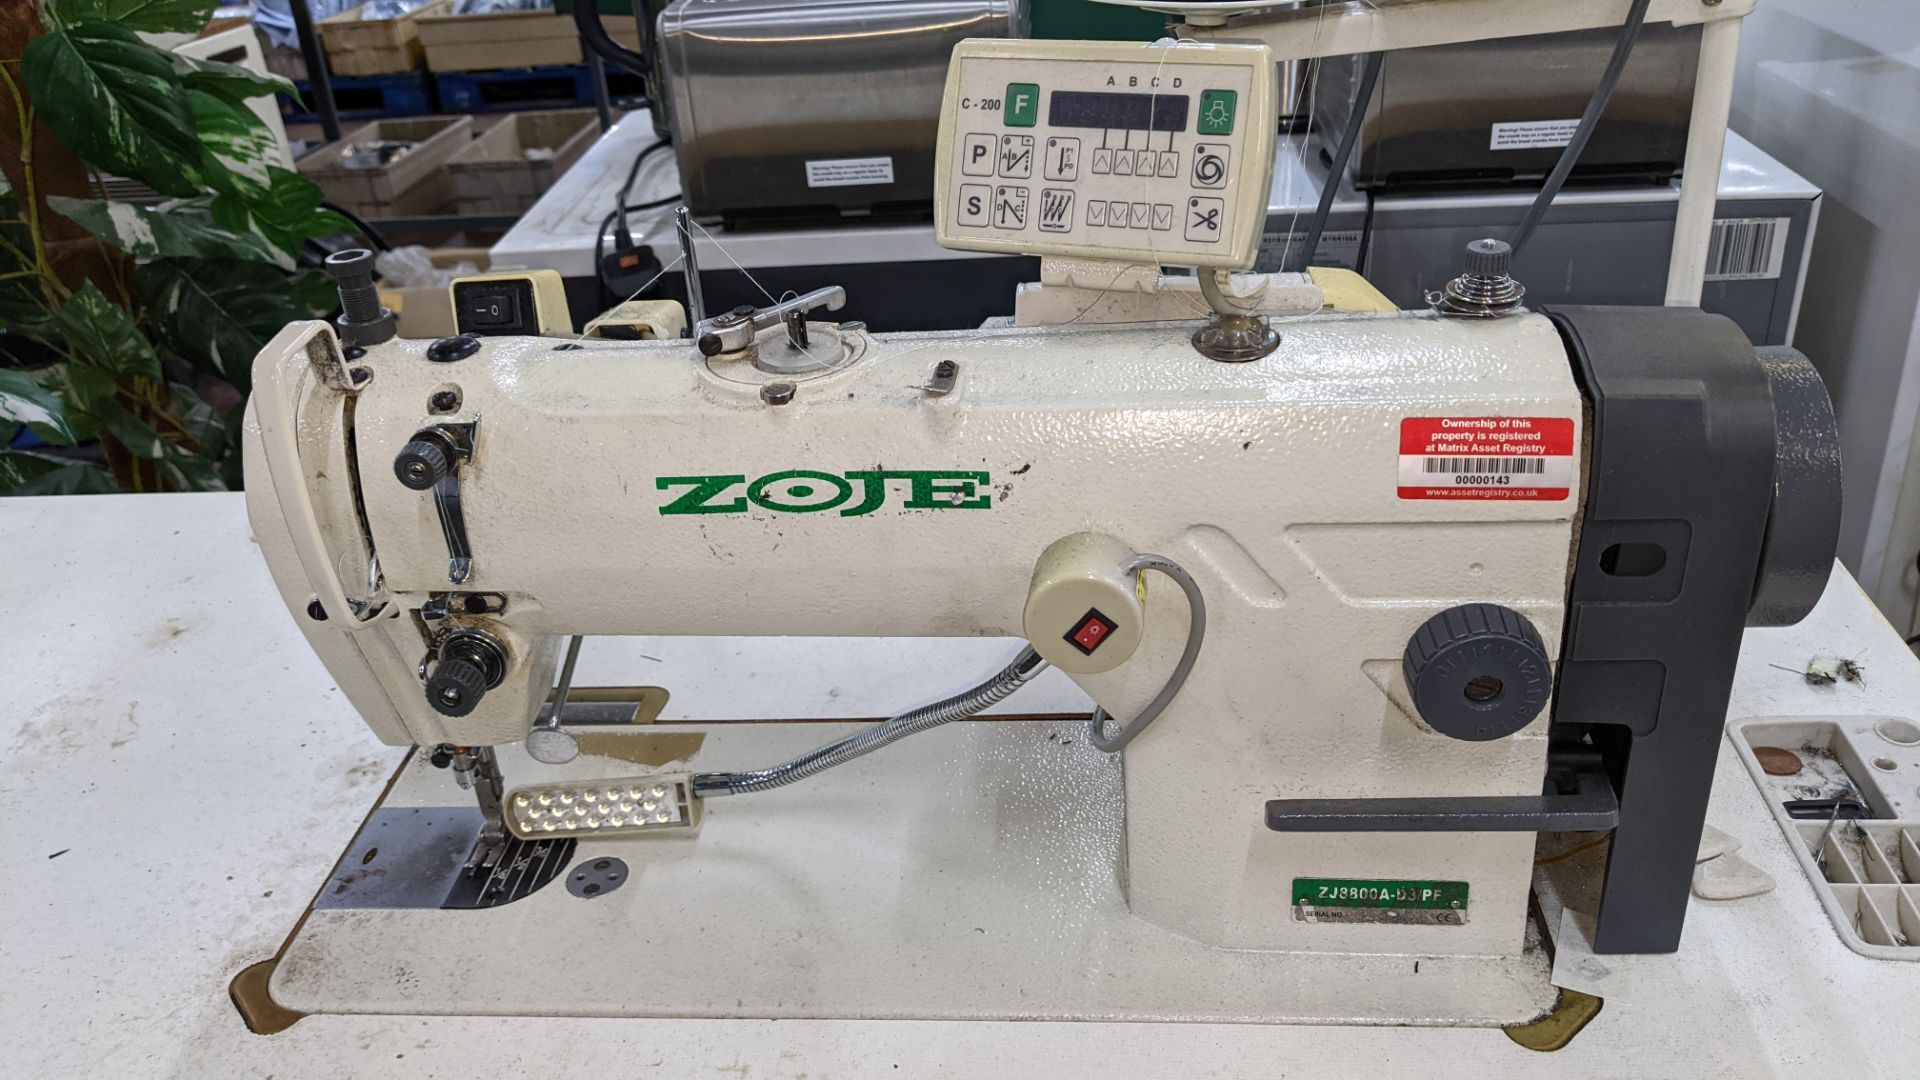 Zoje model ZJ8800A-D3/PF sewing machine with model C-200 digital controller - Image 6 of 15